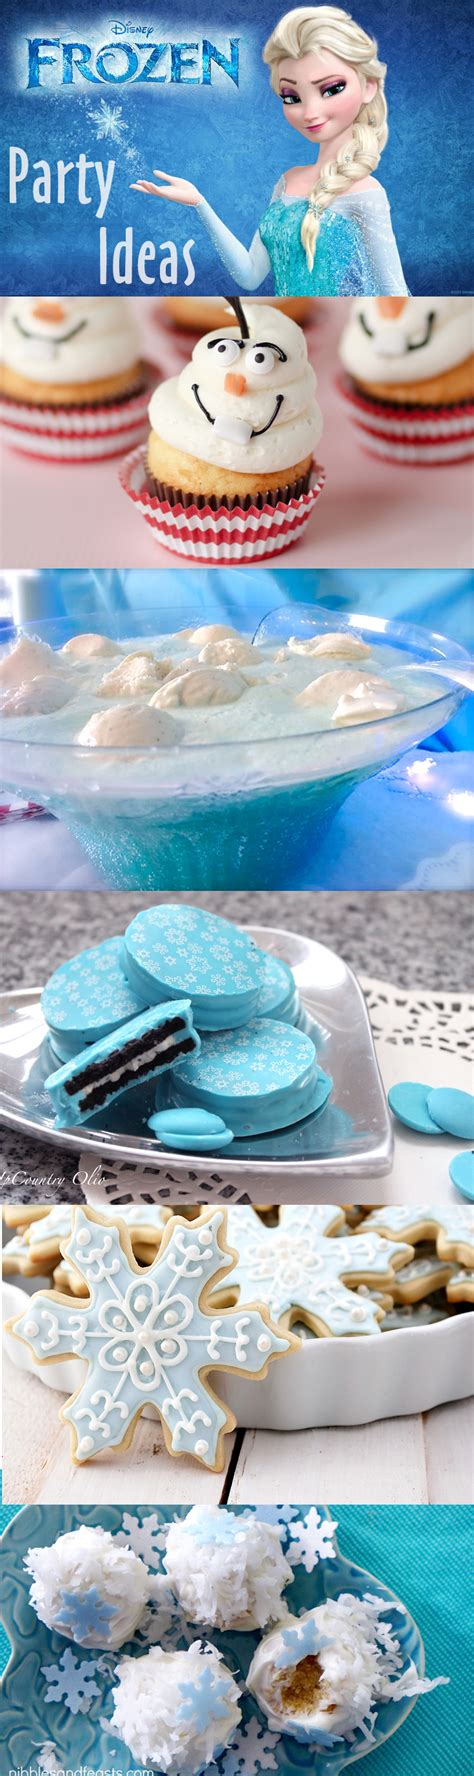 Throw A Disney Frozen Themed Party!  Brownie Bites Blog